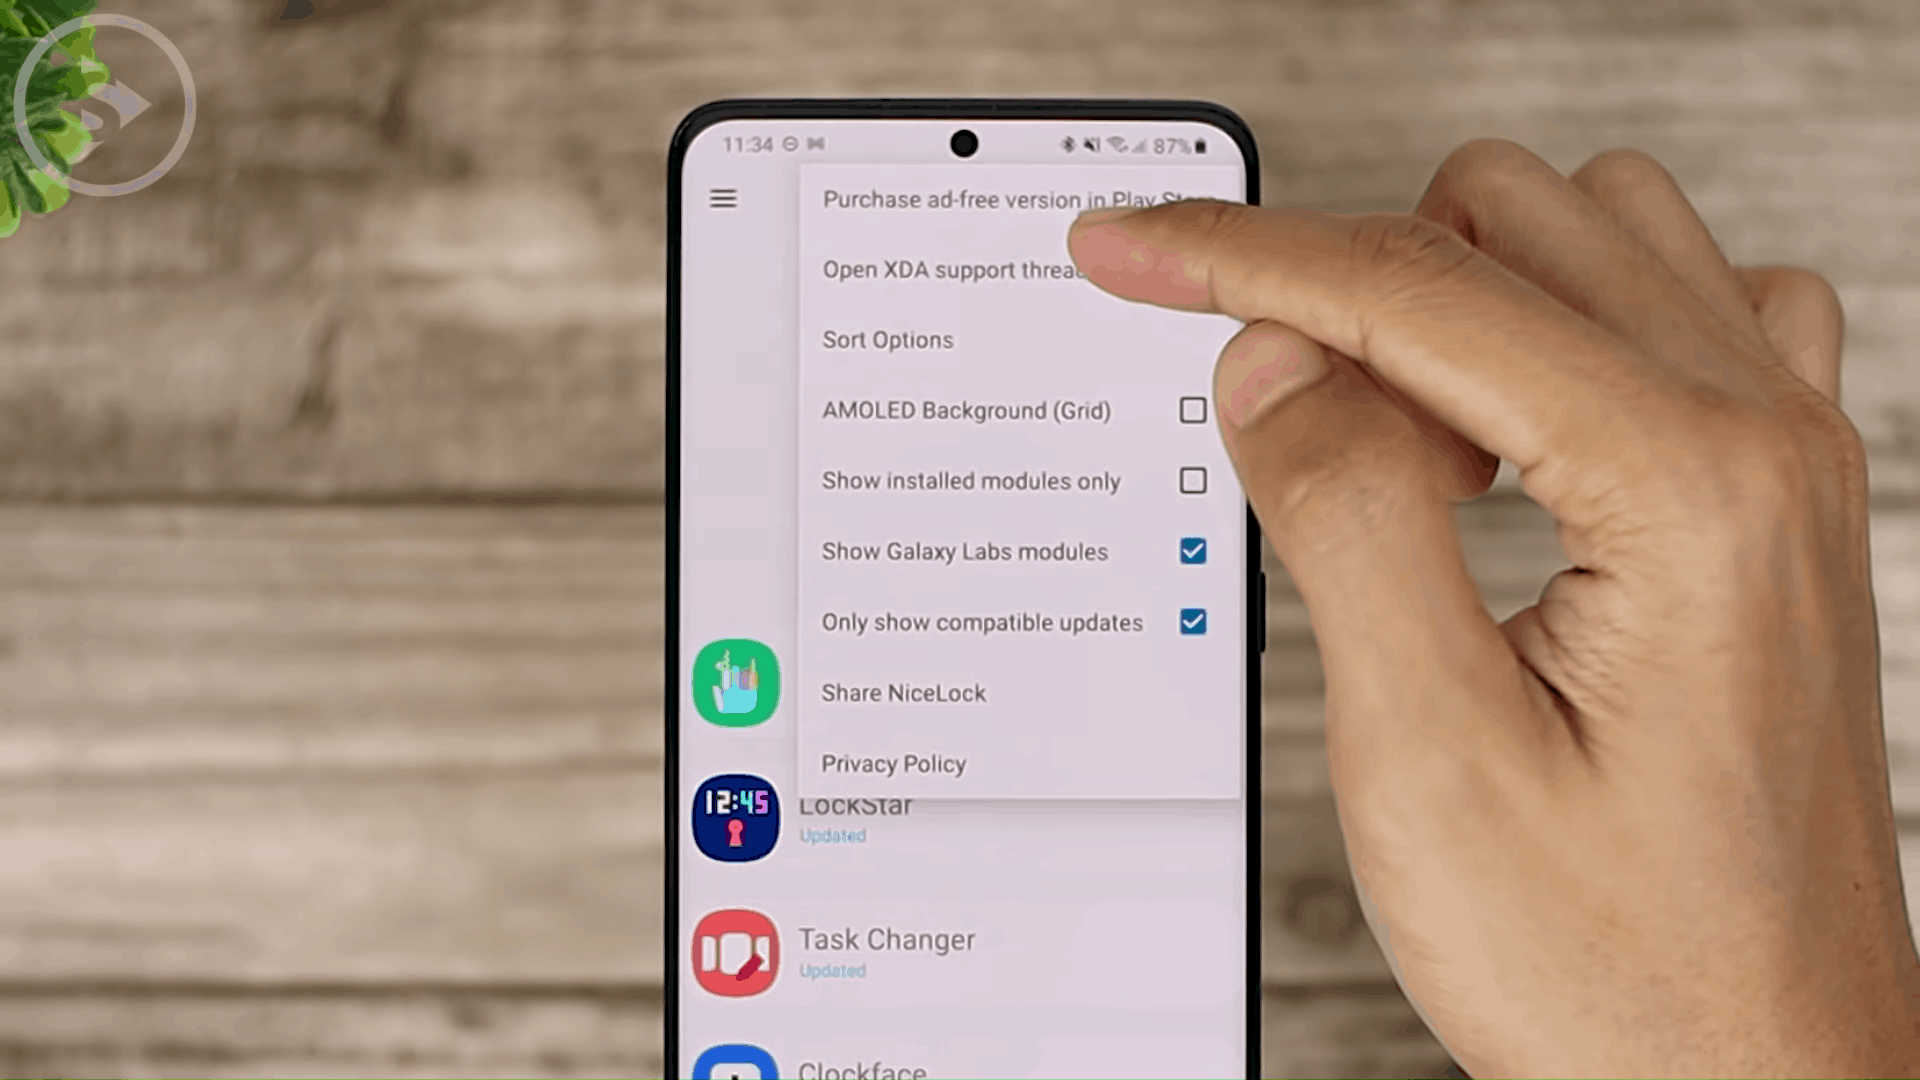 Open XDA support thread - Complete Tips on How to Install the Latest GoodLock in 2021